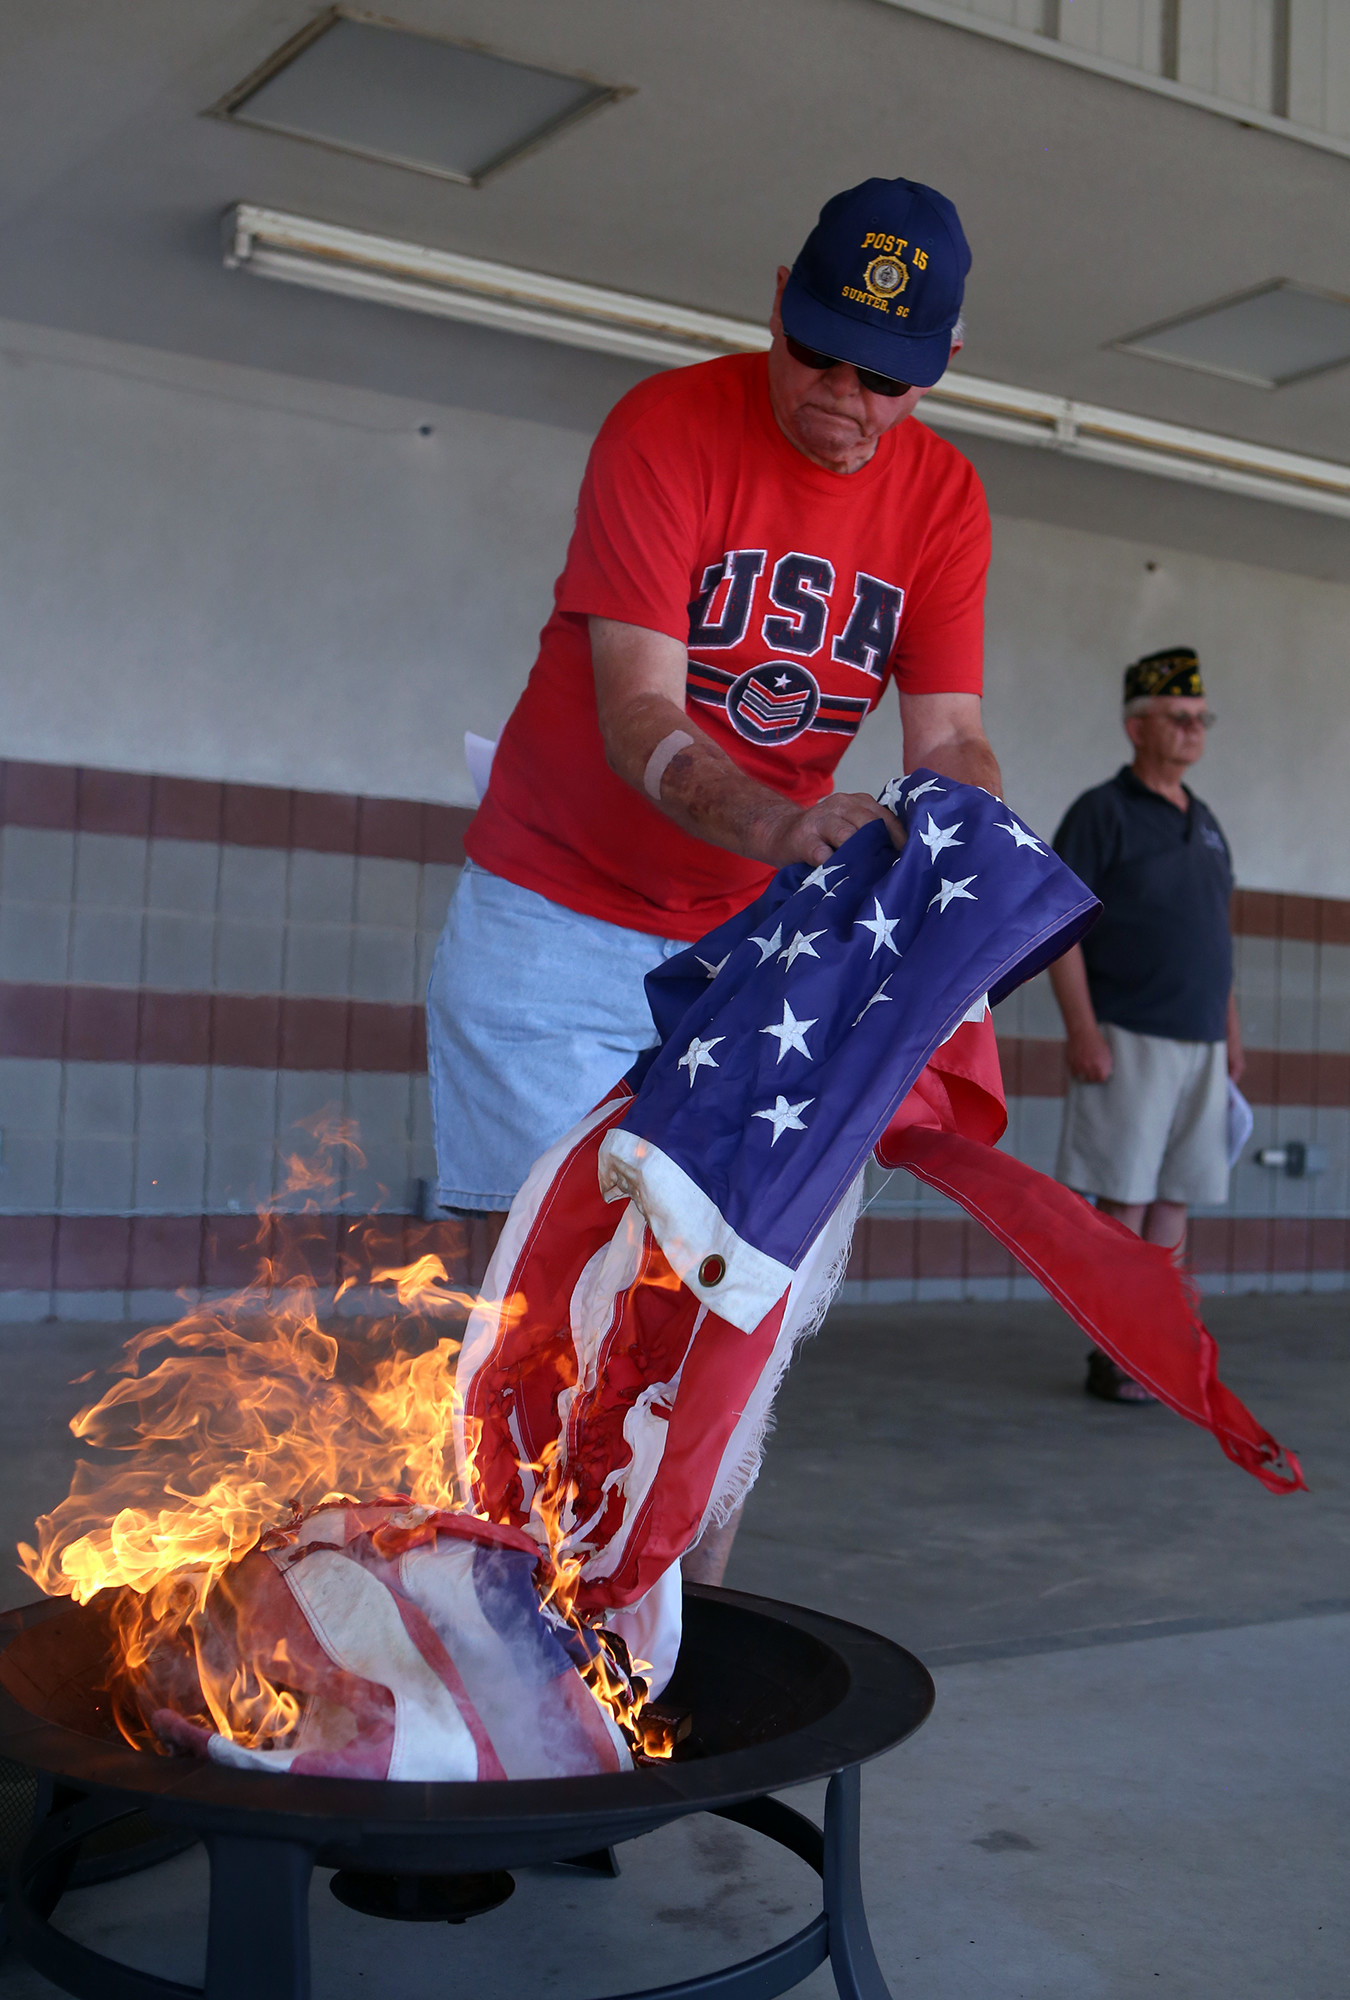 James Stokes, a member of American Legion Post 15, places a soiled flag onto the fire for a proper disposal during the Post's 2015 Flag Day ceremony.